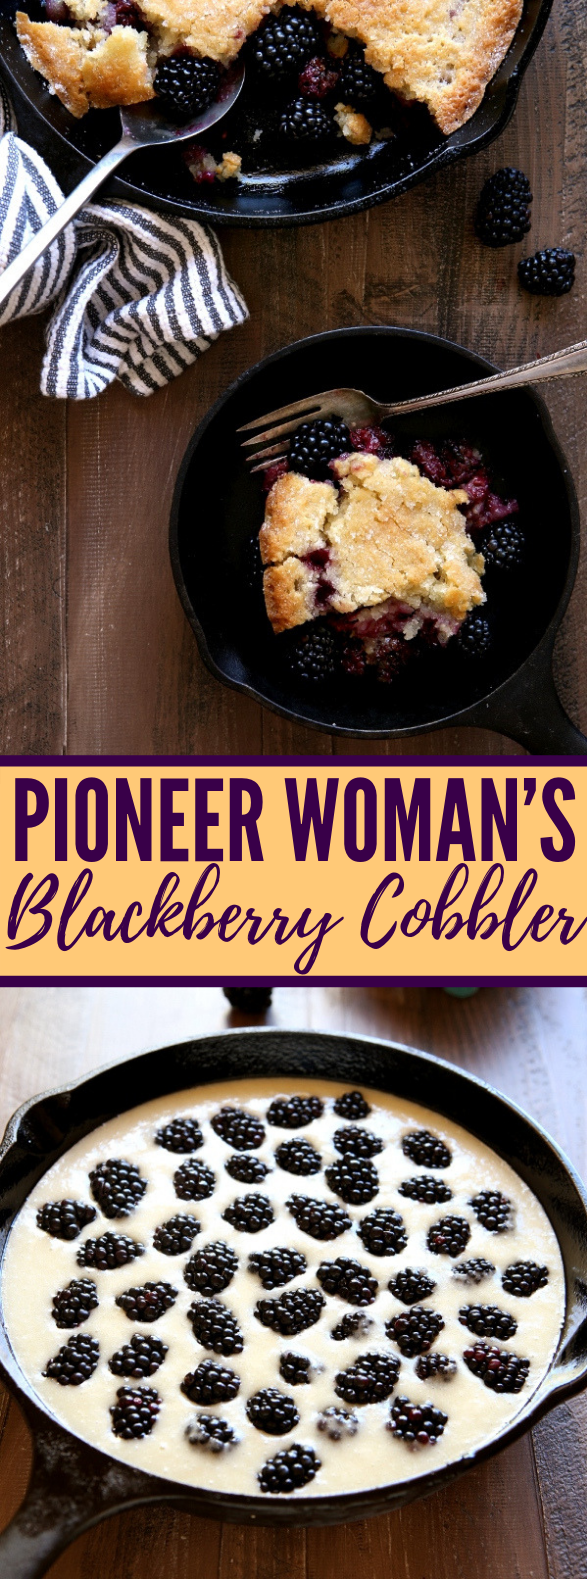 PIONEER WOMAN'S BLACKBERRY COBBLER #dessert #berries